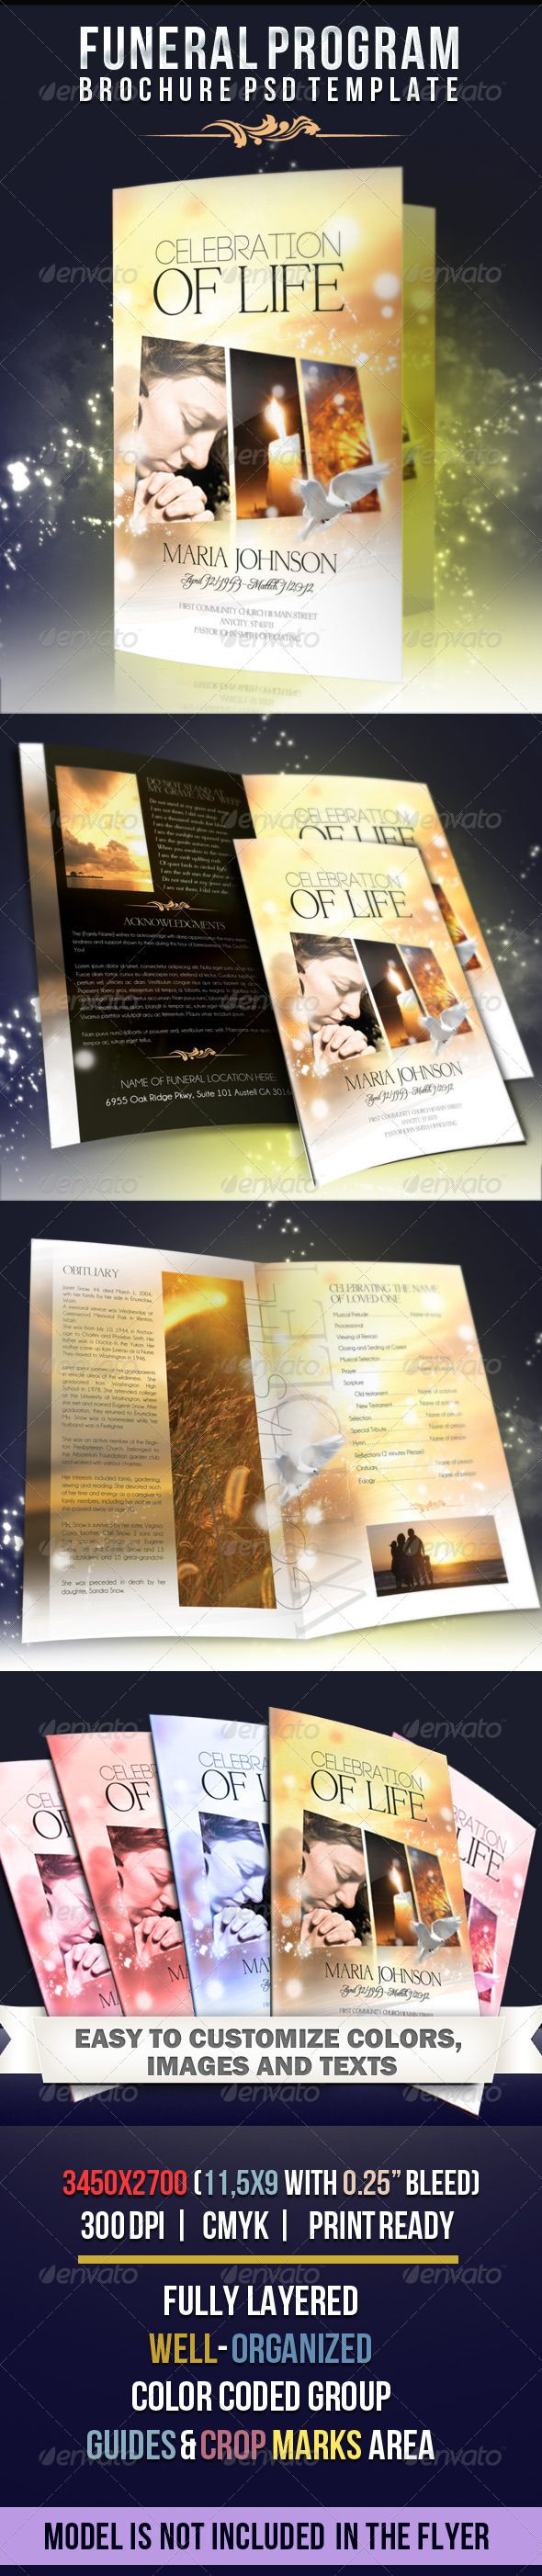 memorial brochure templates free - celebration of life funeral program brochure template